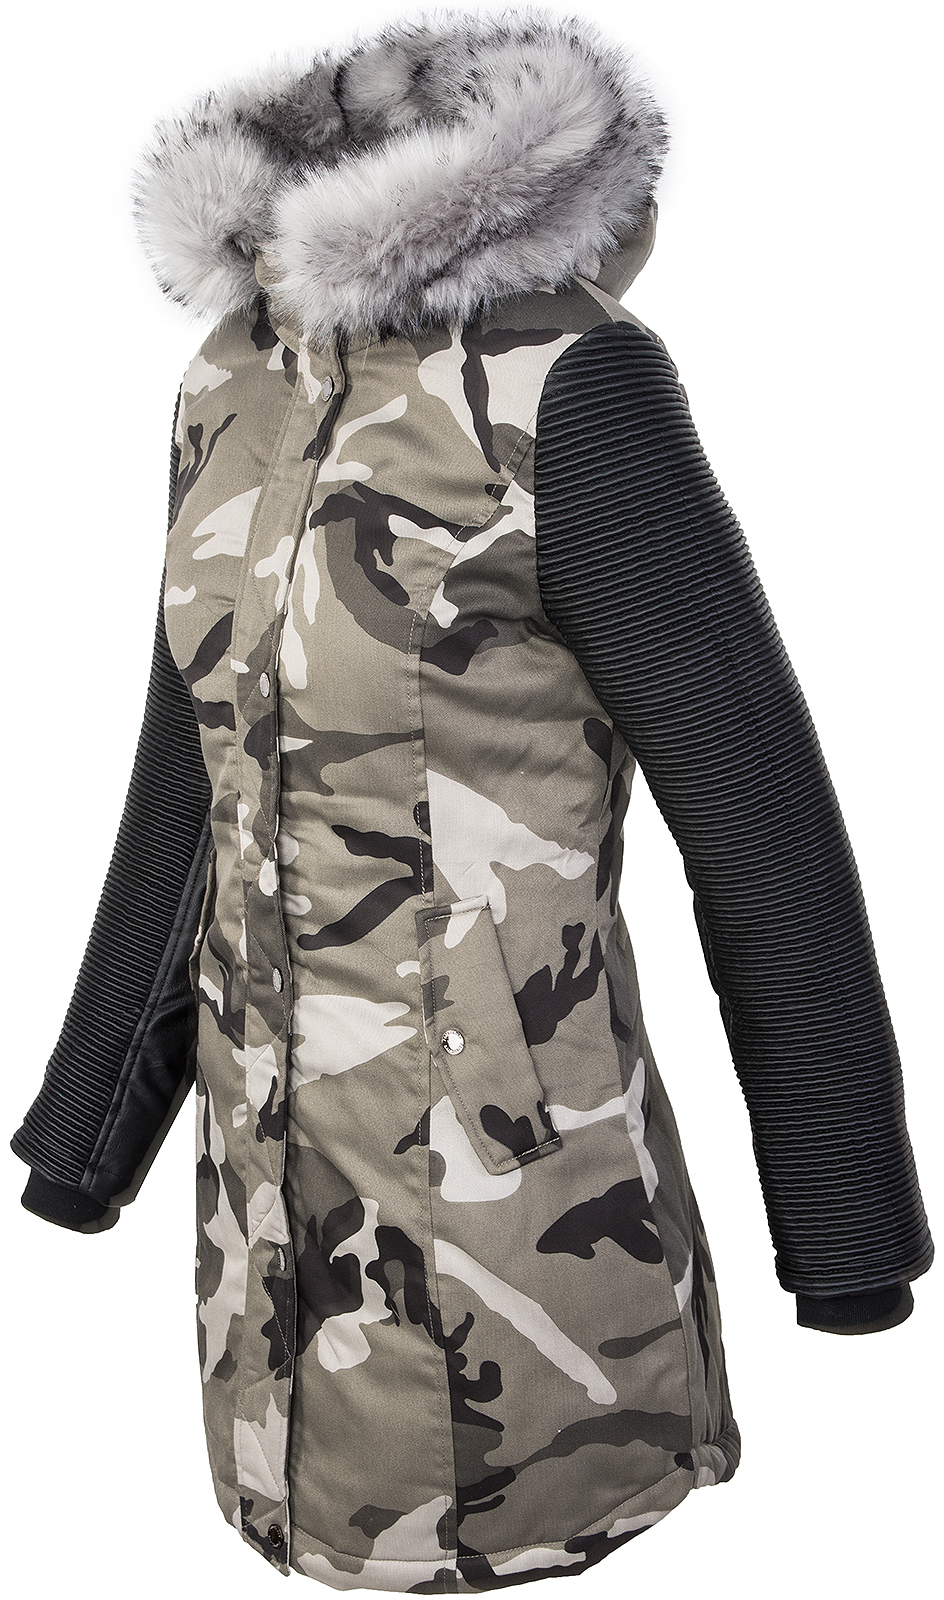 damen camouflage jacke winterjacke parka kunstleder rmel bikerjacke s xl d 349 ebay. Black Bedroom Furniture Sets. Home Design Ideas